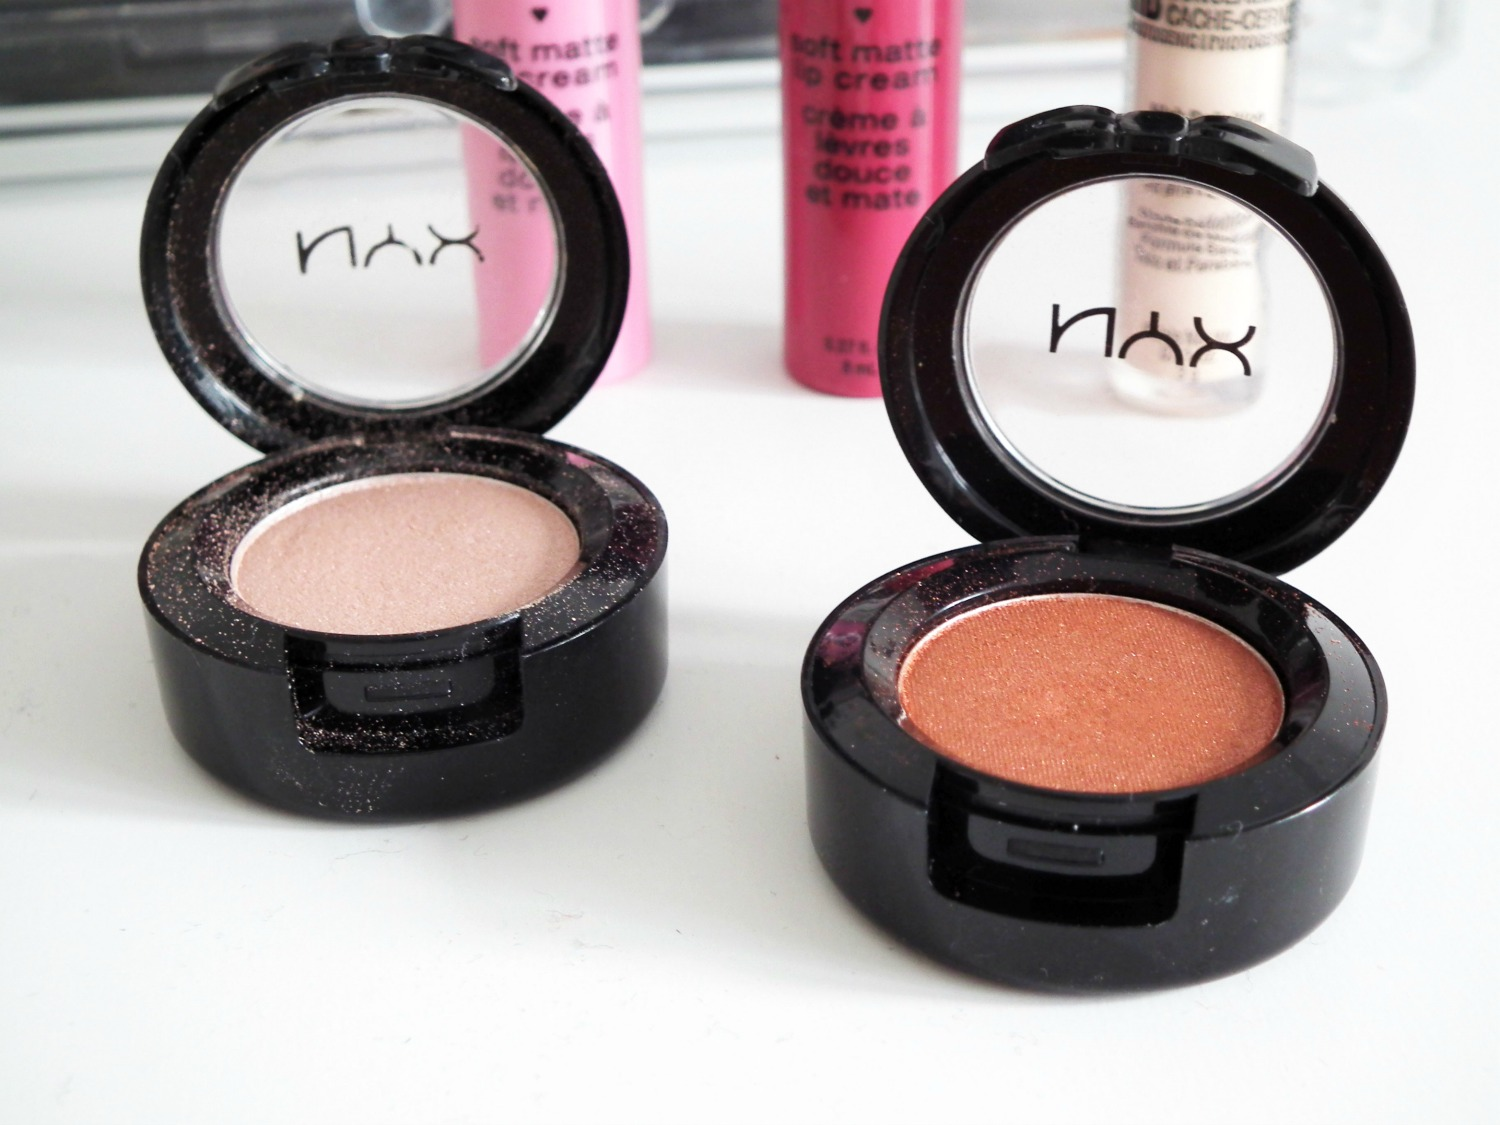 3 Product's From NYX You Need To Try